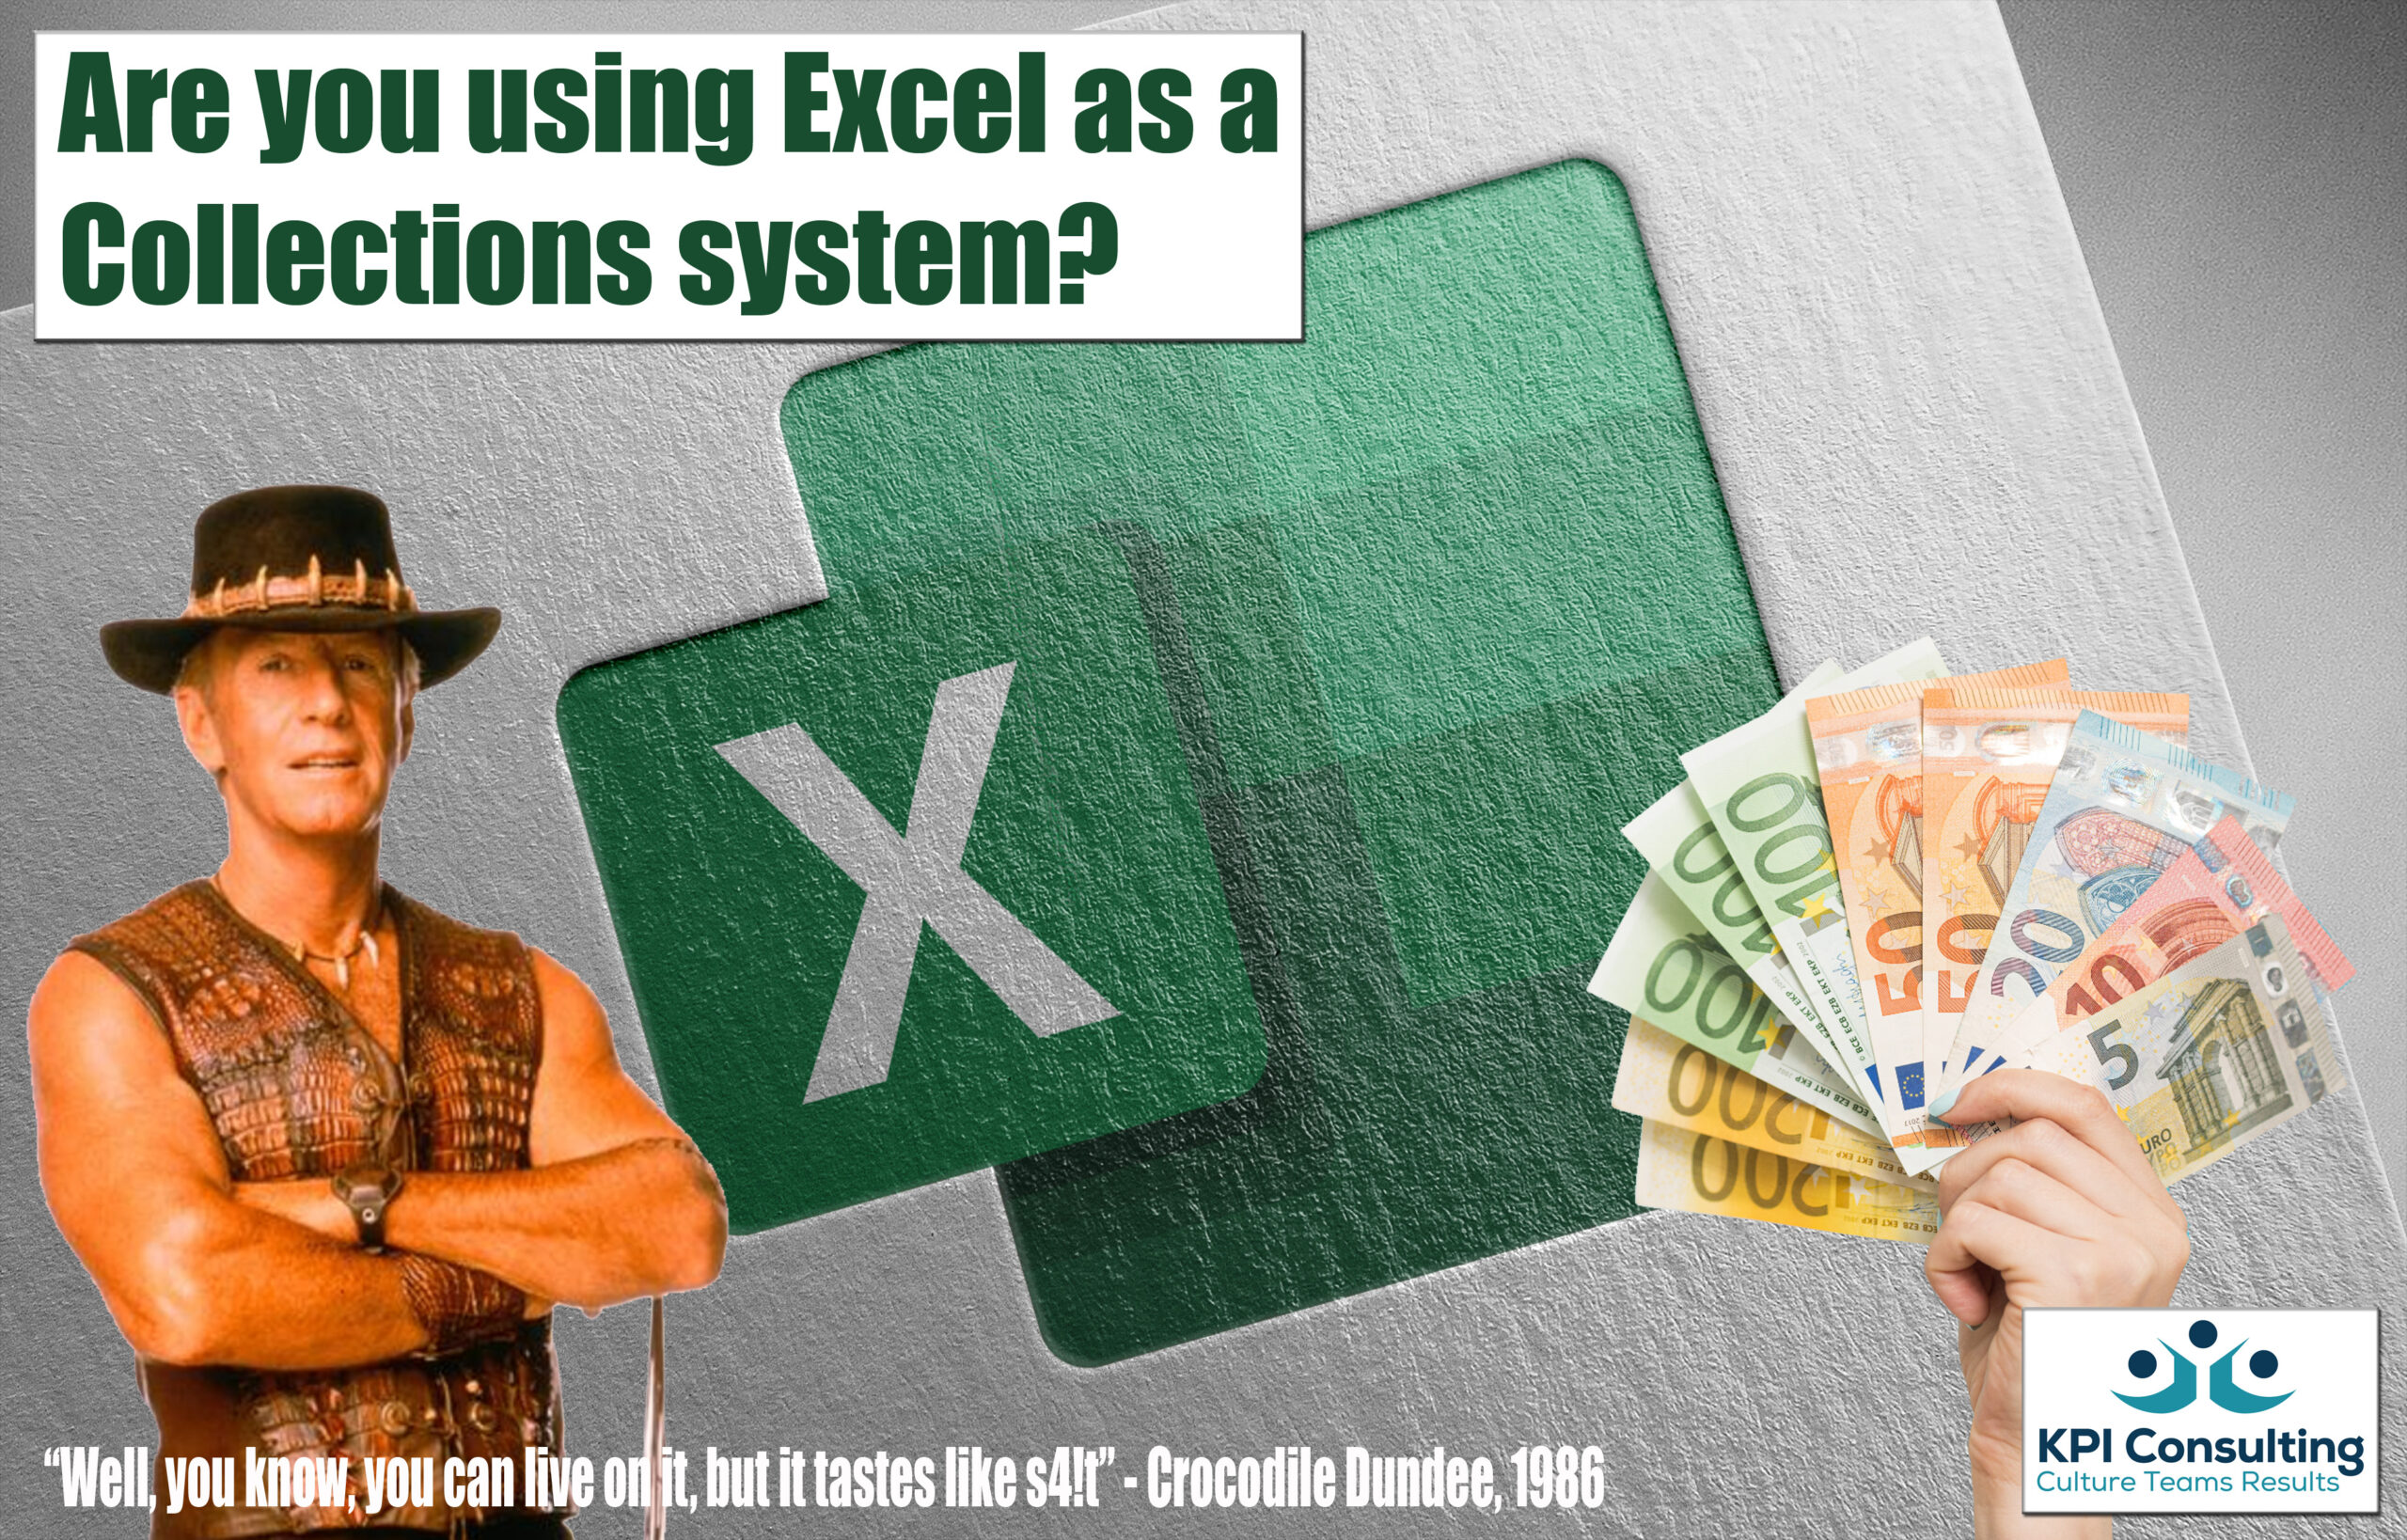 Using Excel as a Collections system